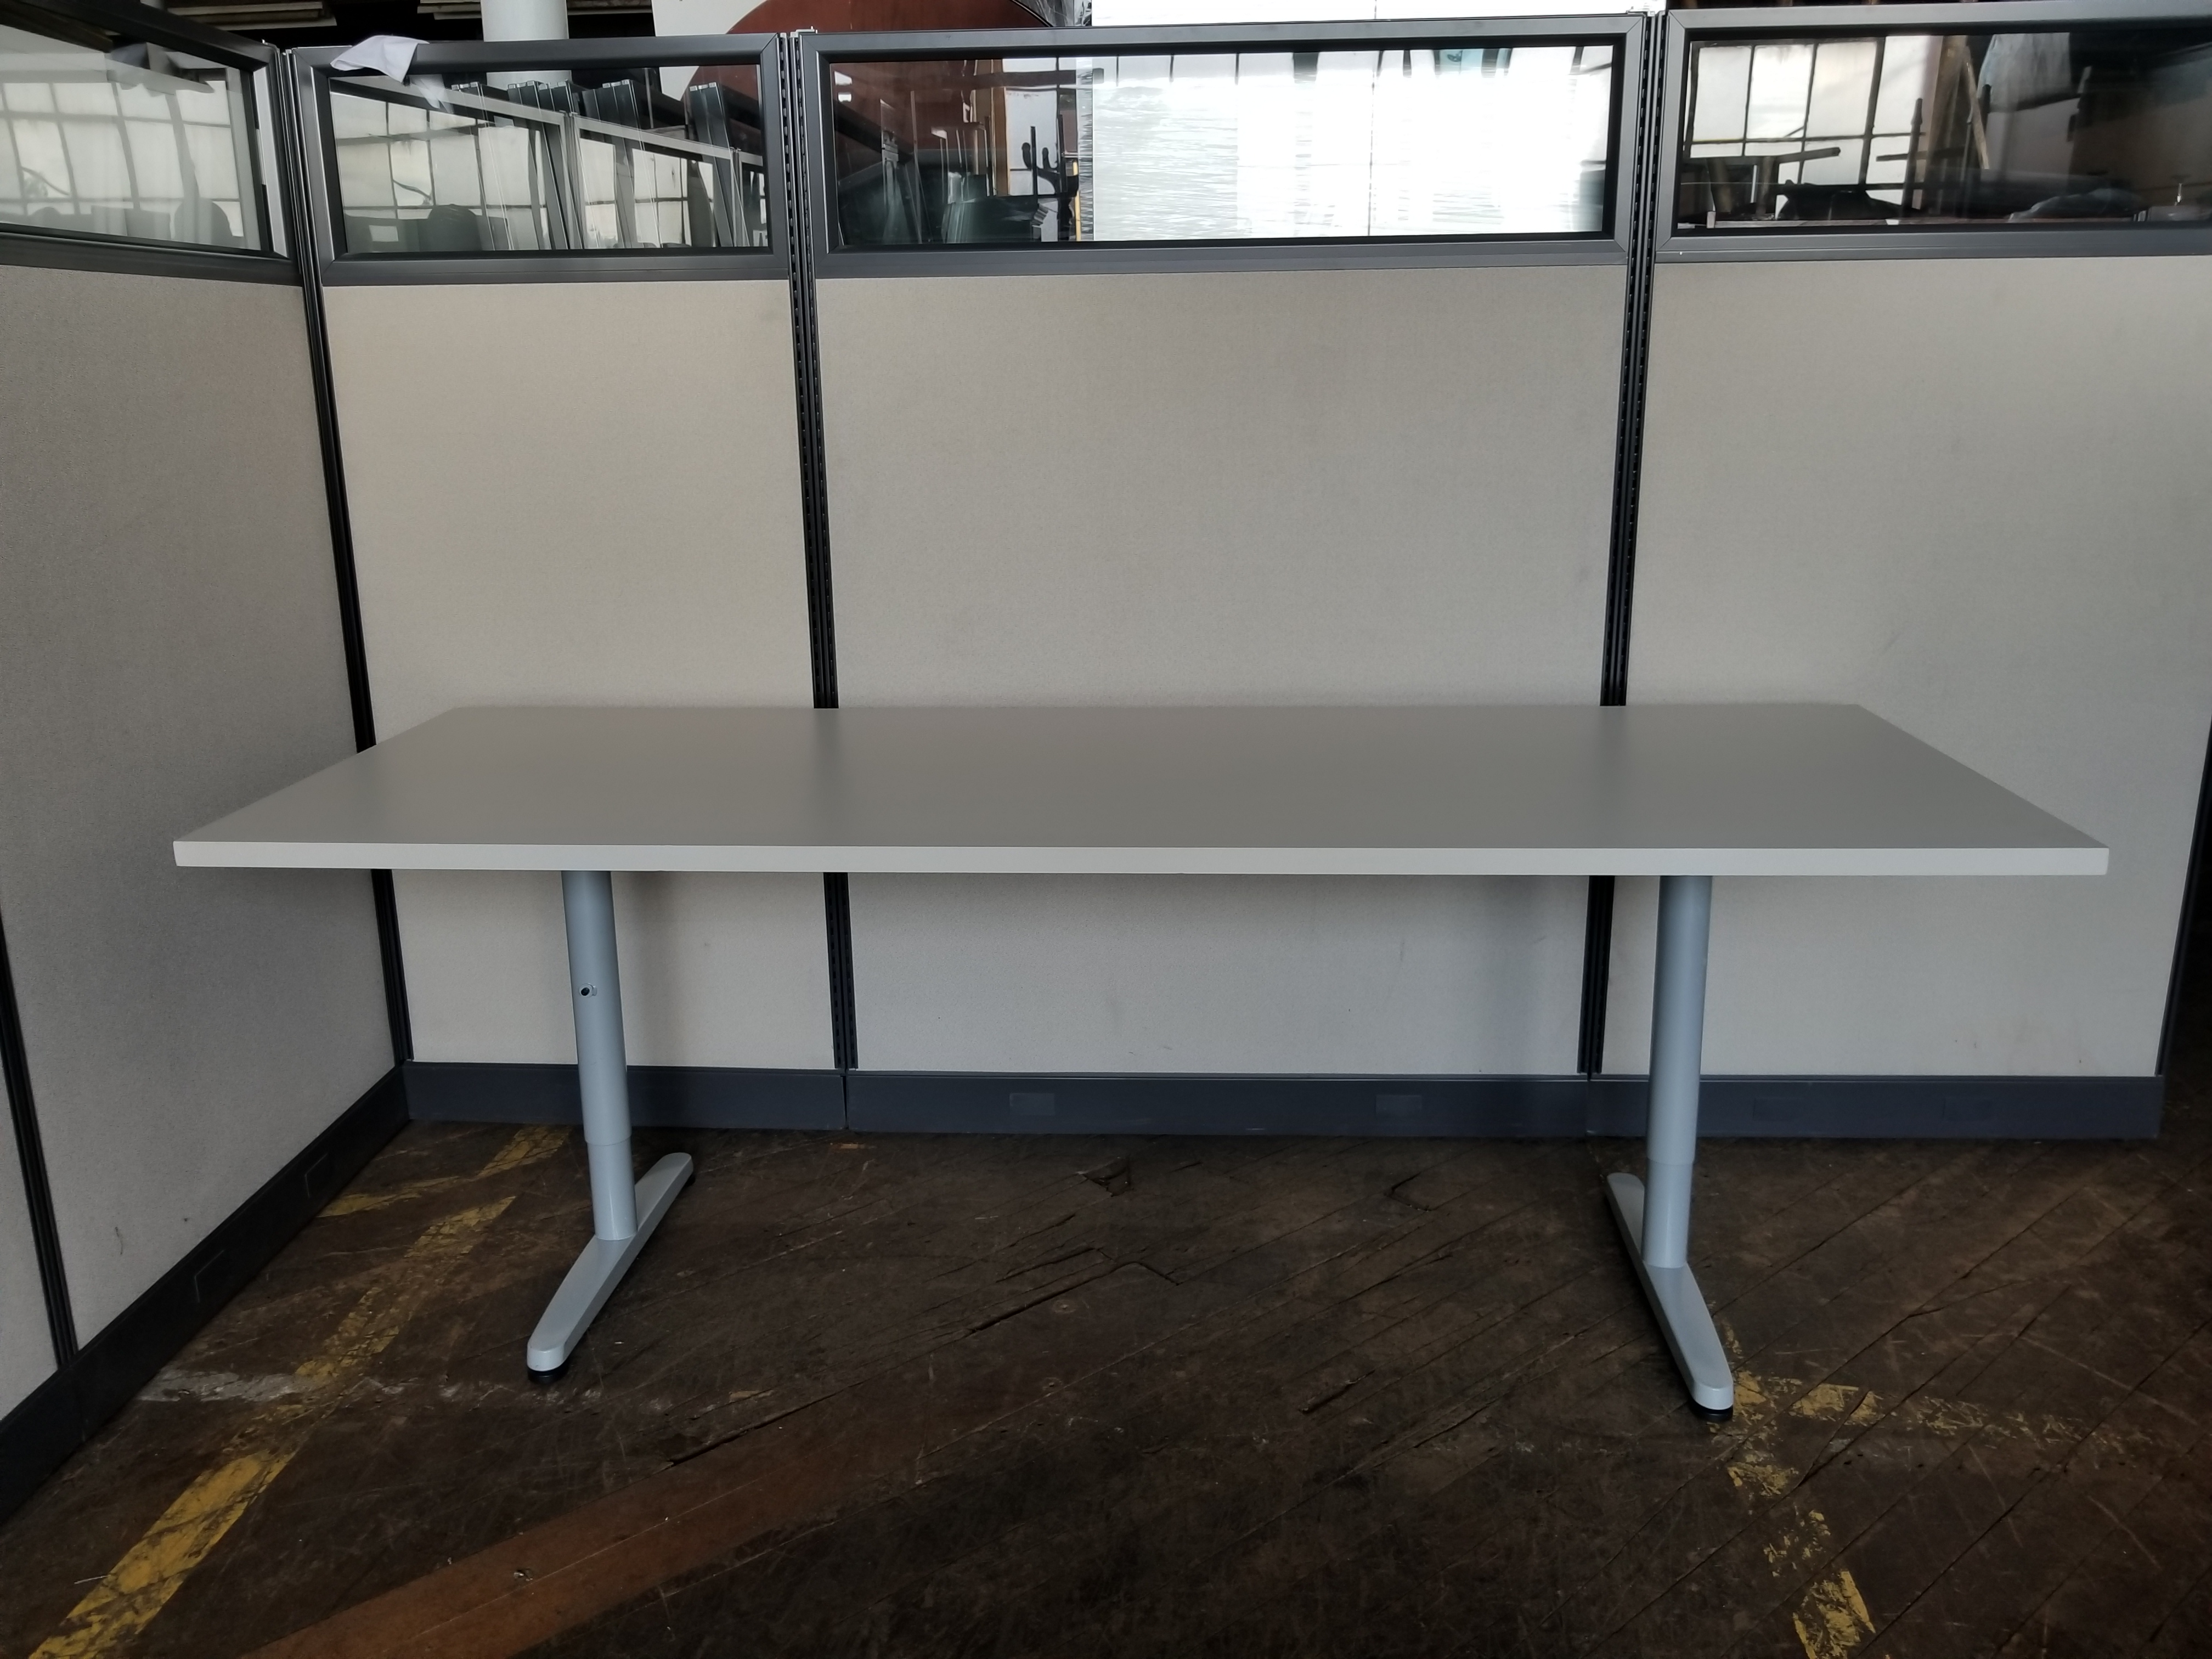 187. 30' X 7' Table